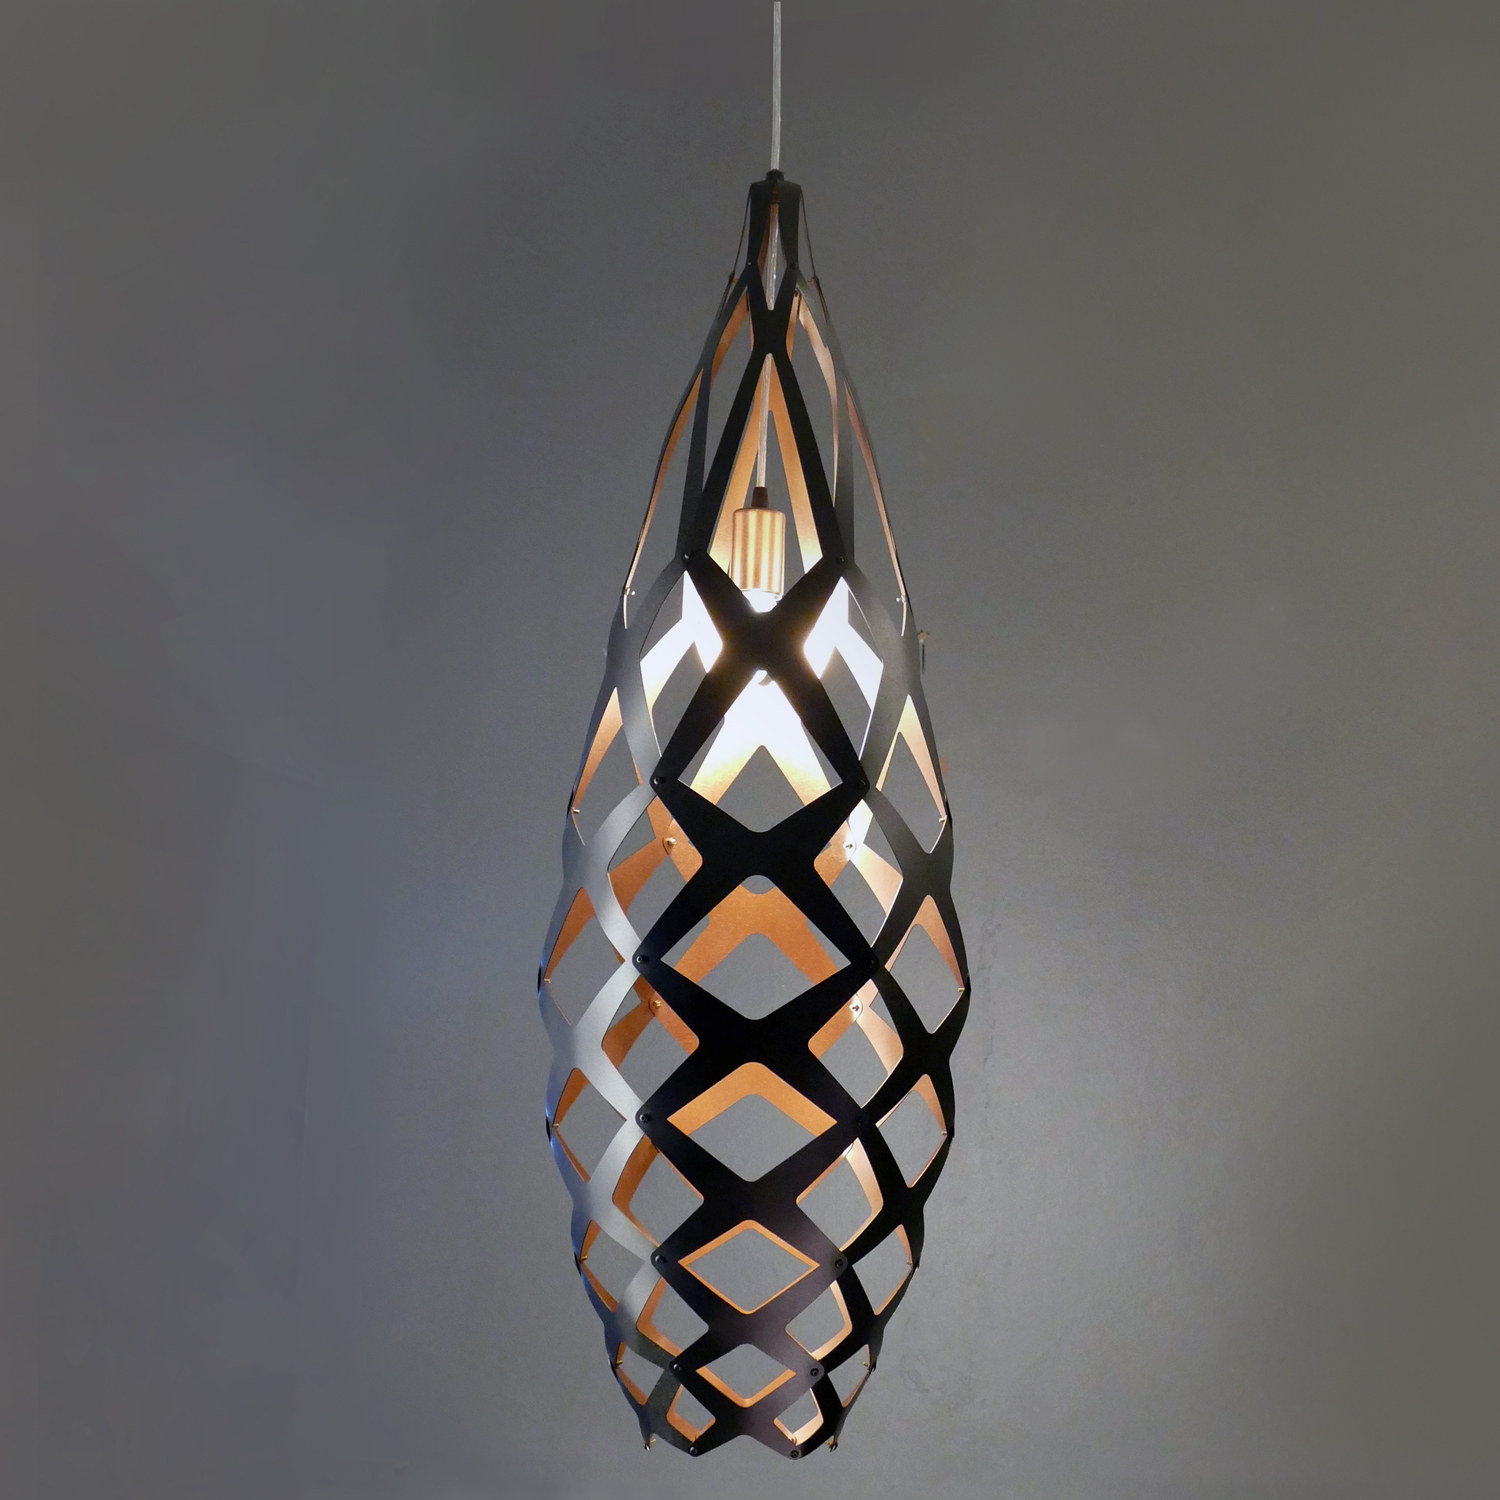 is of key home designing uniquelighting elements your chandelier how pendants sconces choosing give right decorating design space the expensive light tamela by a designs lighting or to when designer wall look one make can